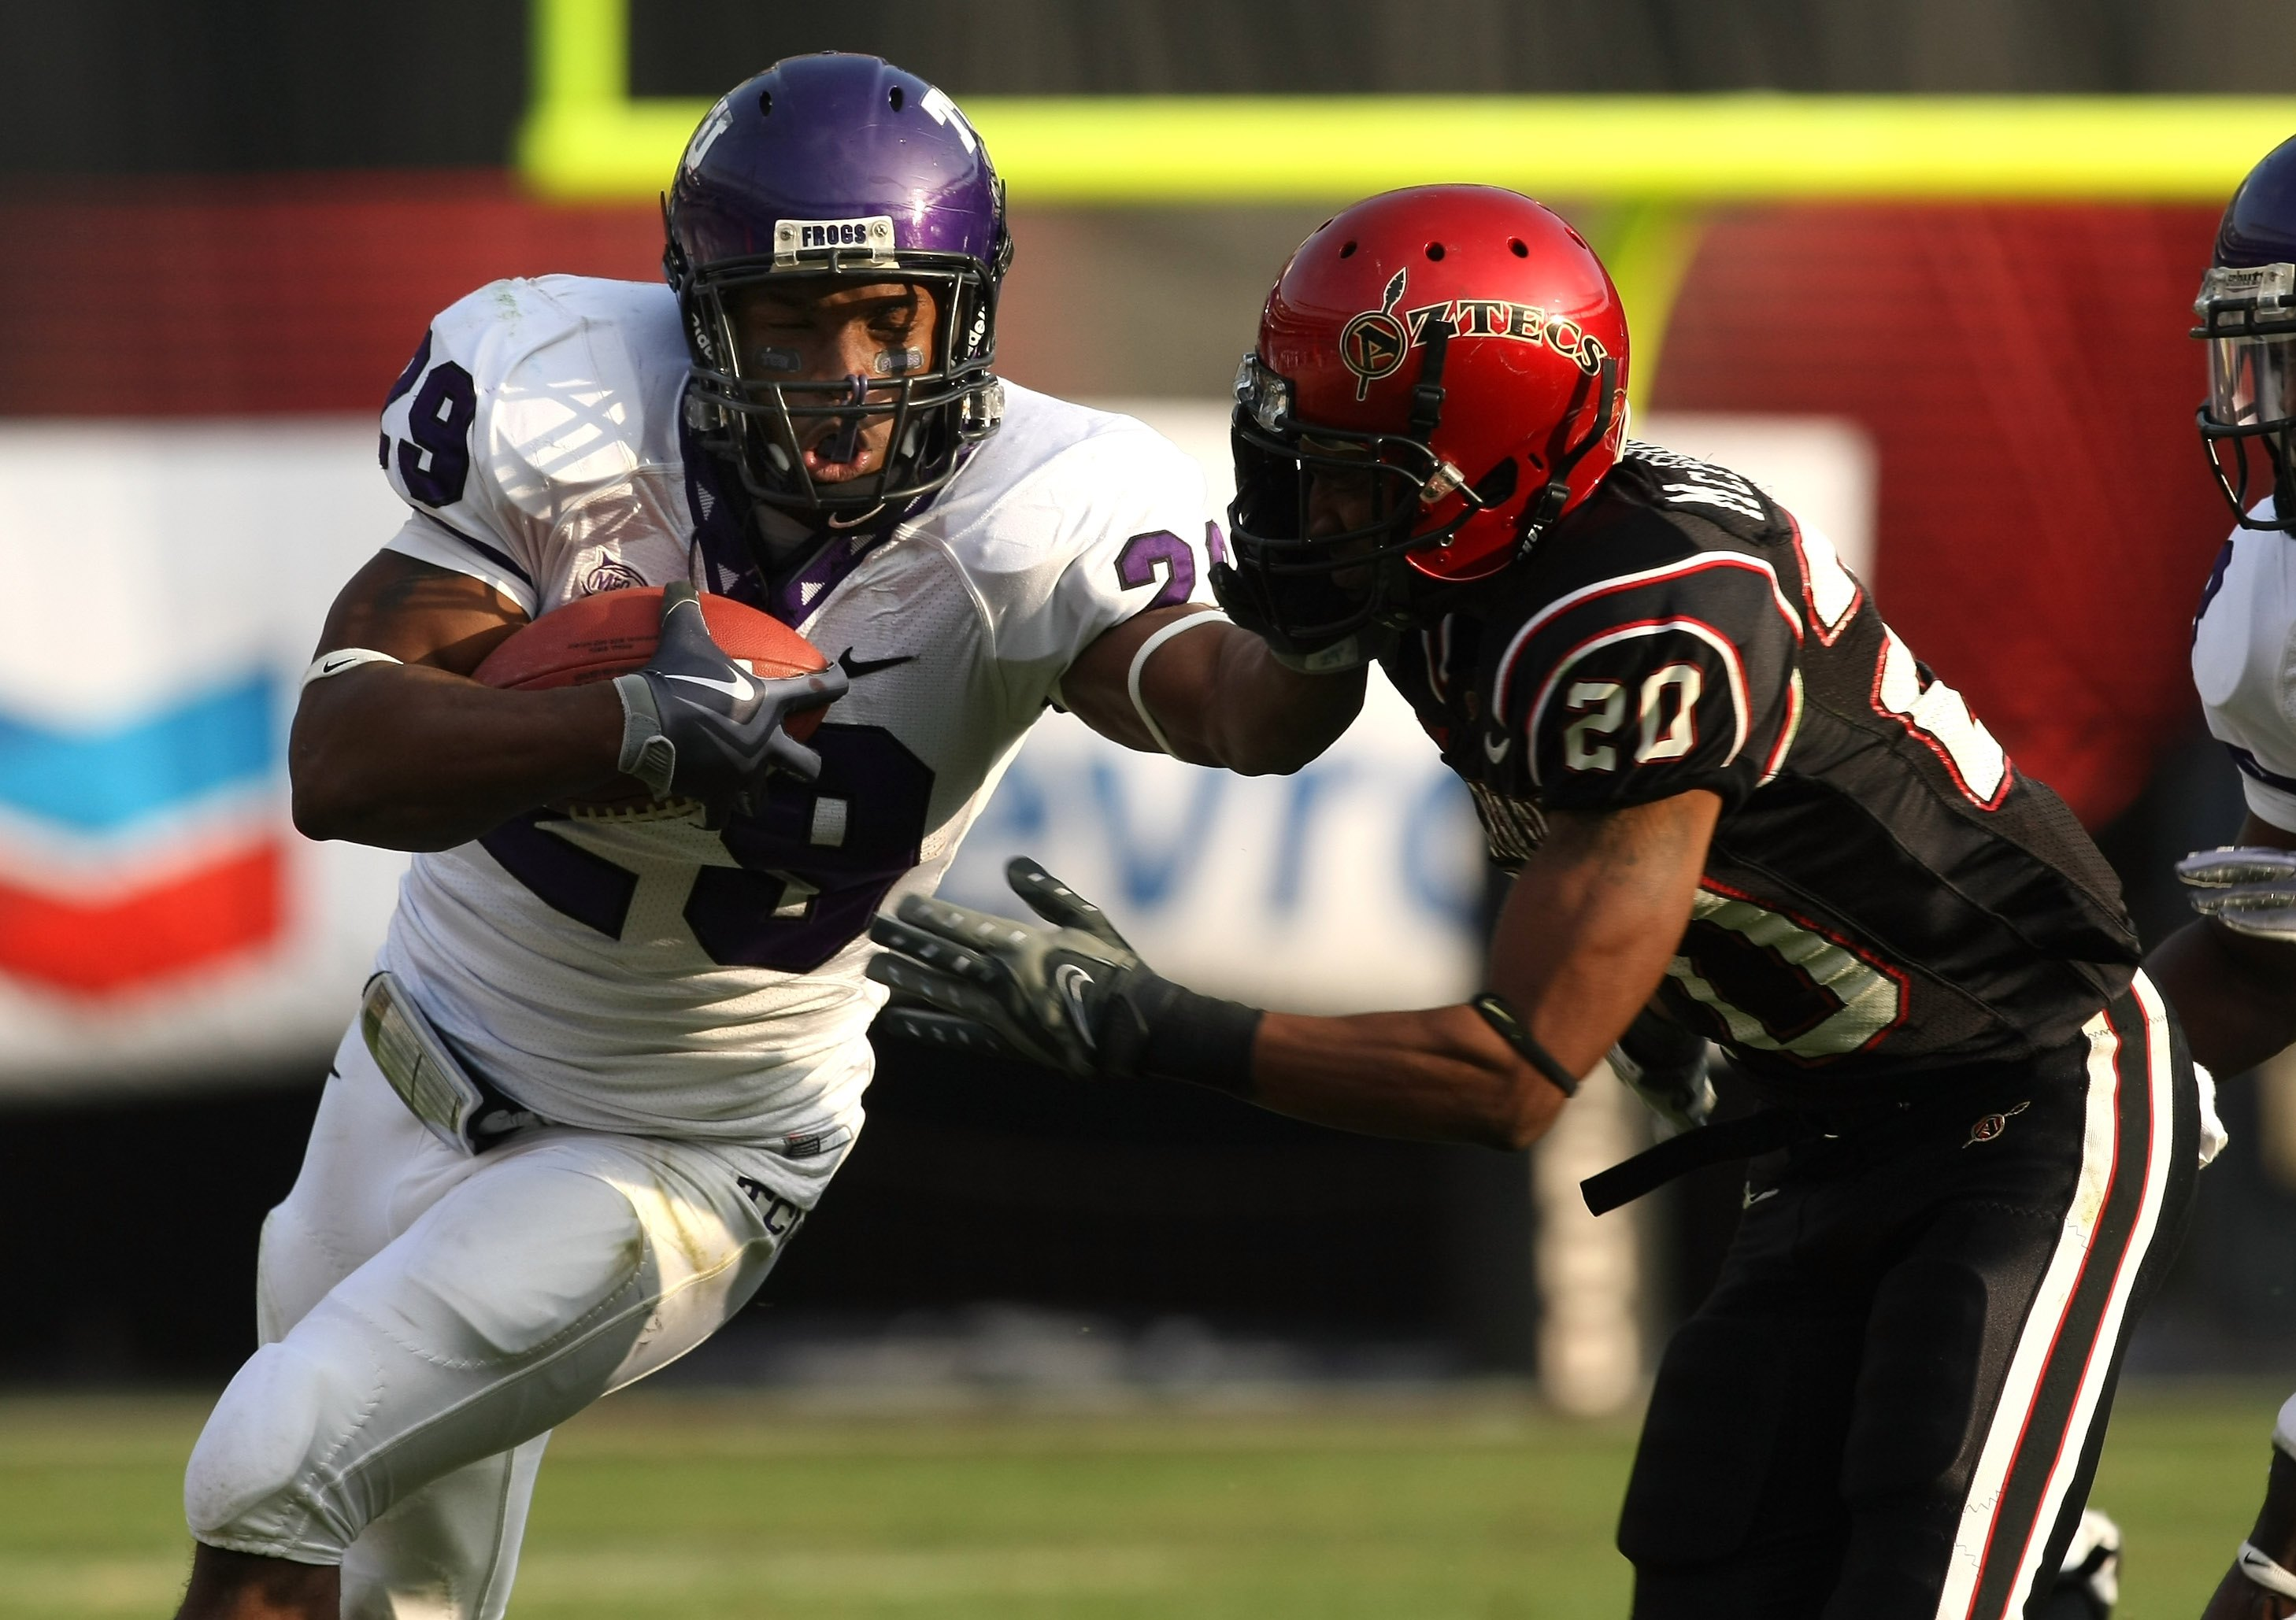 SAN DIEGO - NOVEMBER 07:  Running back Matthew Tucker #29 of the Texas Christian University Horned Frogs carries the ball as he stiffarms corner back Leon McFadden #20 of the San Diego State Aztecs on November 7, 2009 at Qualcomm Stadium in San Diego, Cal